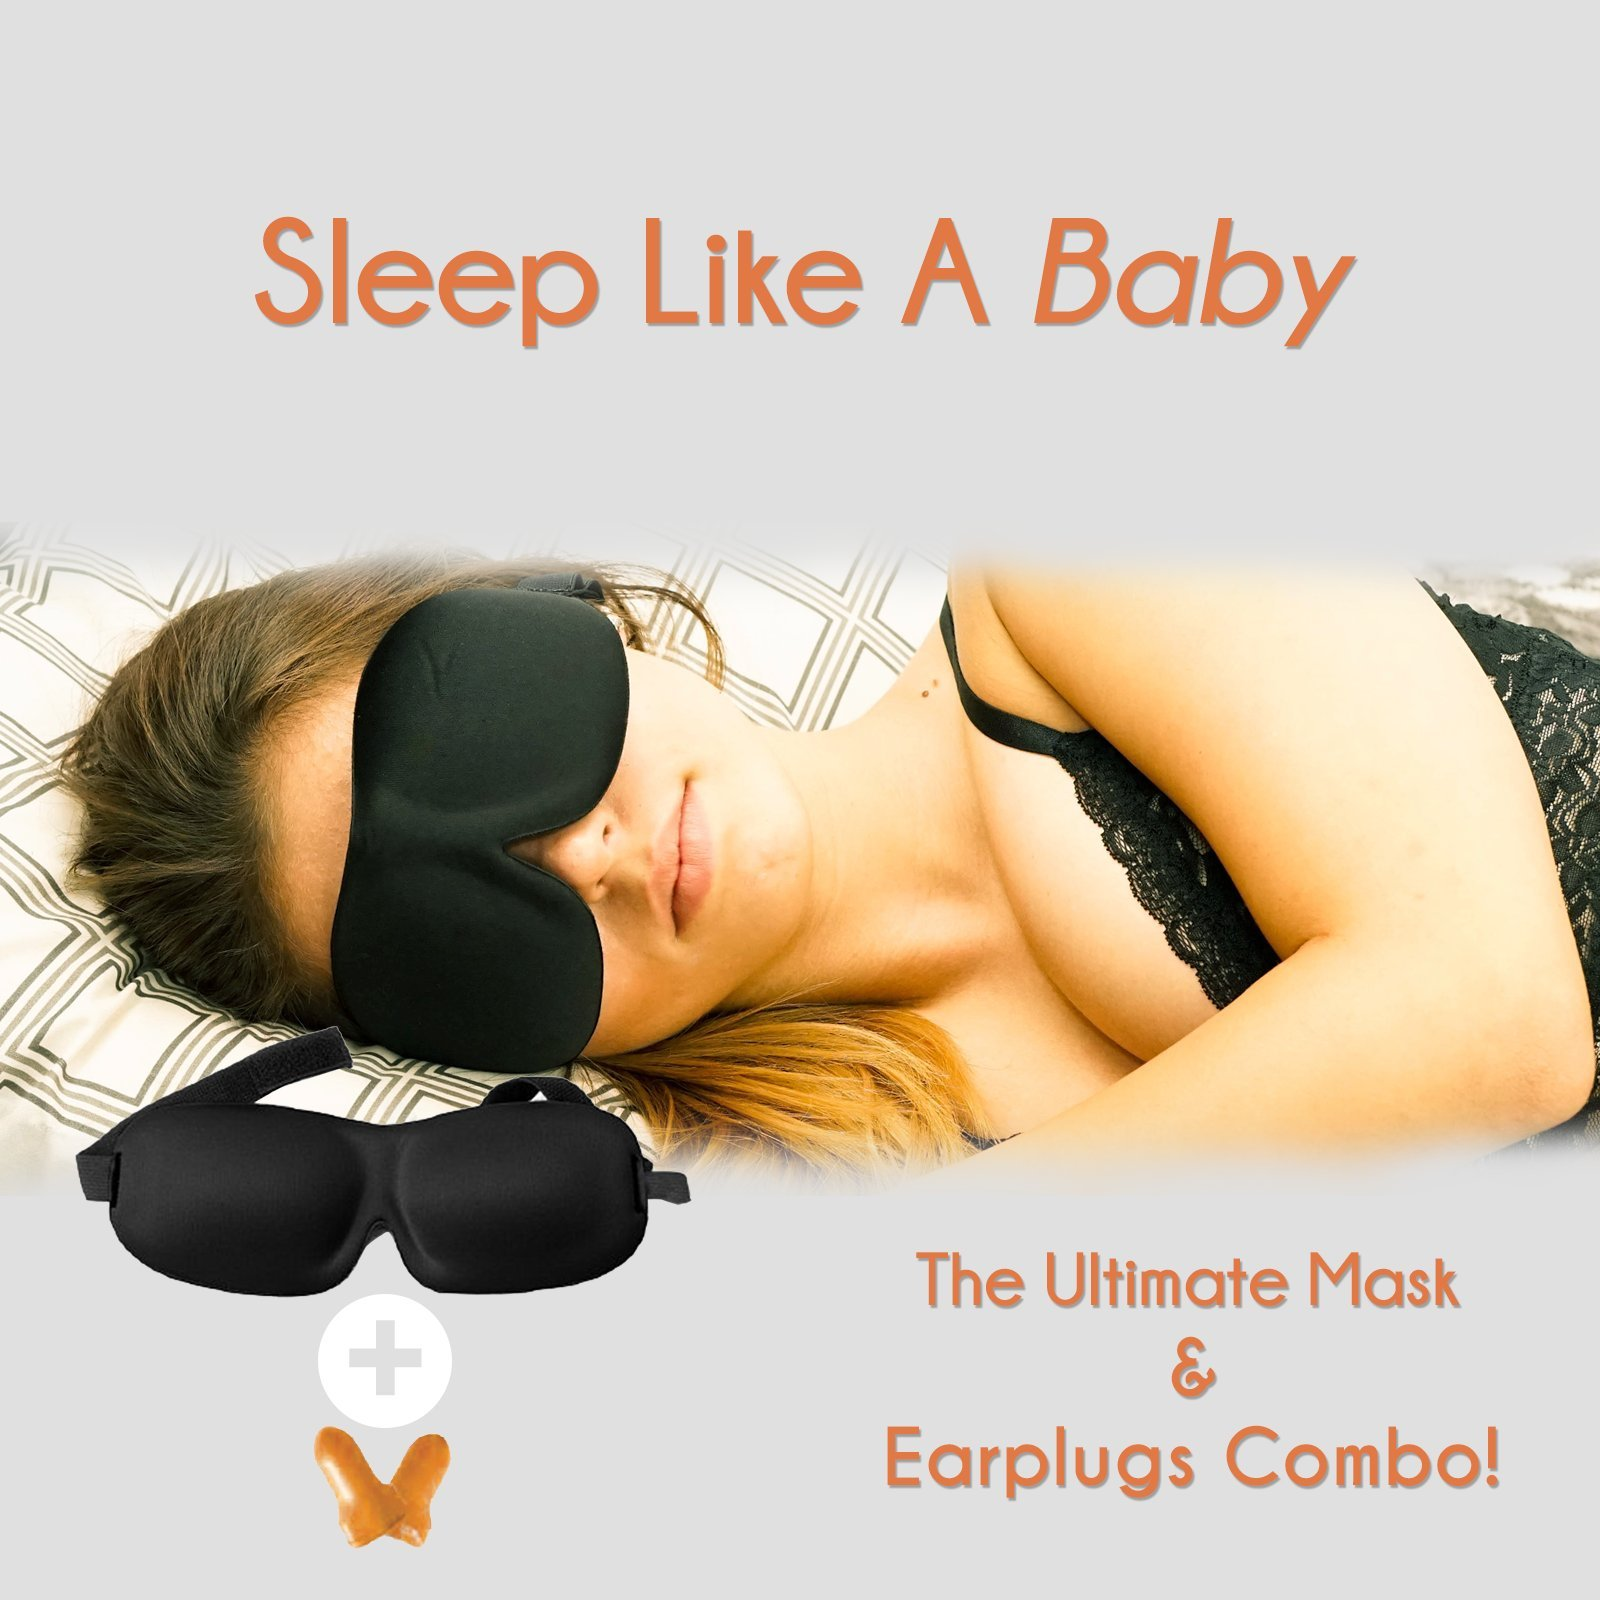 [TOP RATED] Sleep Mask with Earplugs PREMIUM Quality Contoured Eye Mask - Lightweight With Adjustable Strap - Blocks The Light Completely - Best For Travel, Insomnia or Quiet Night Sleep by SleePedia (Image #3)